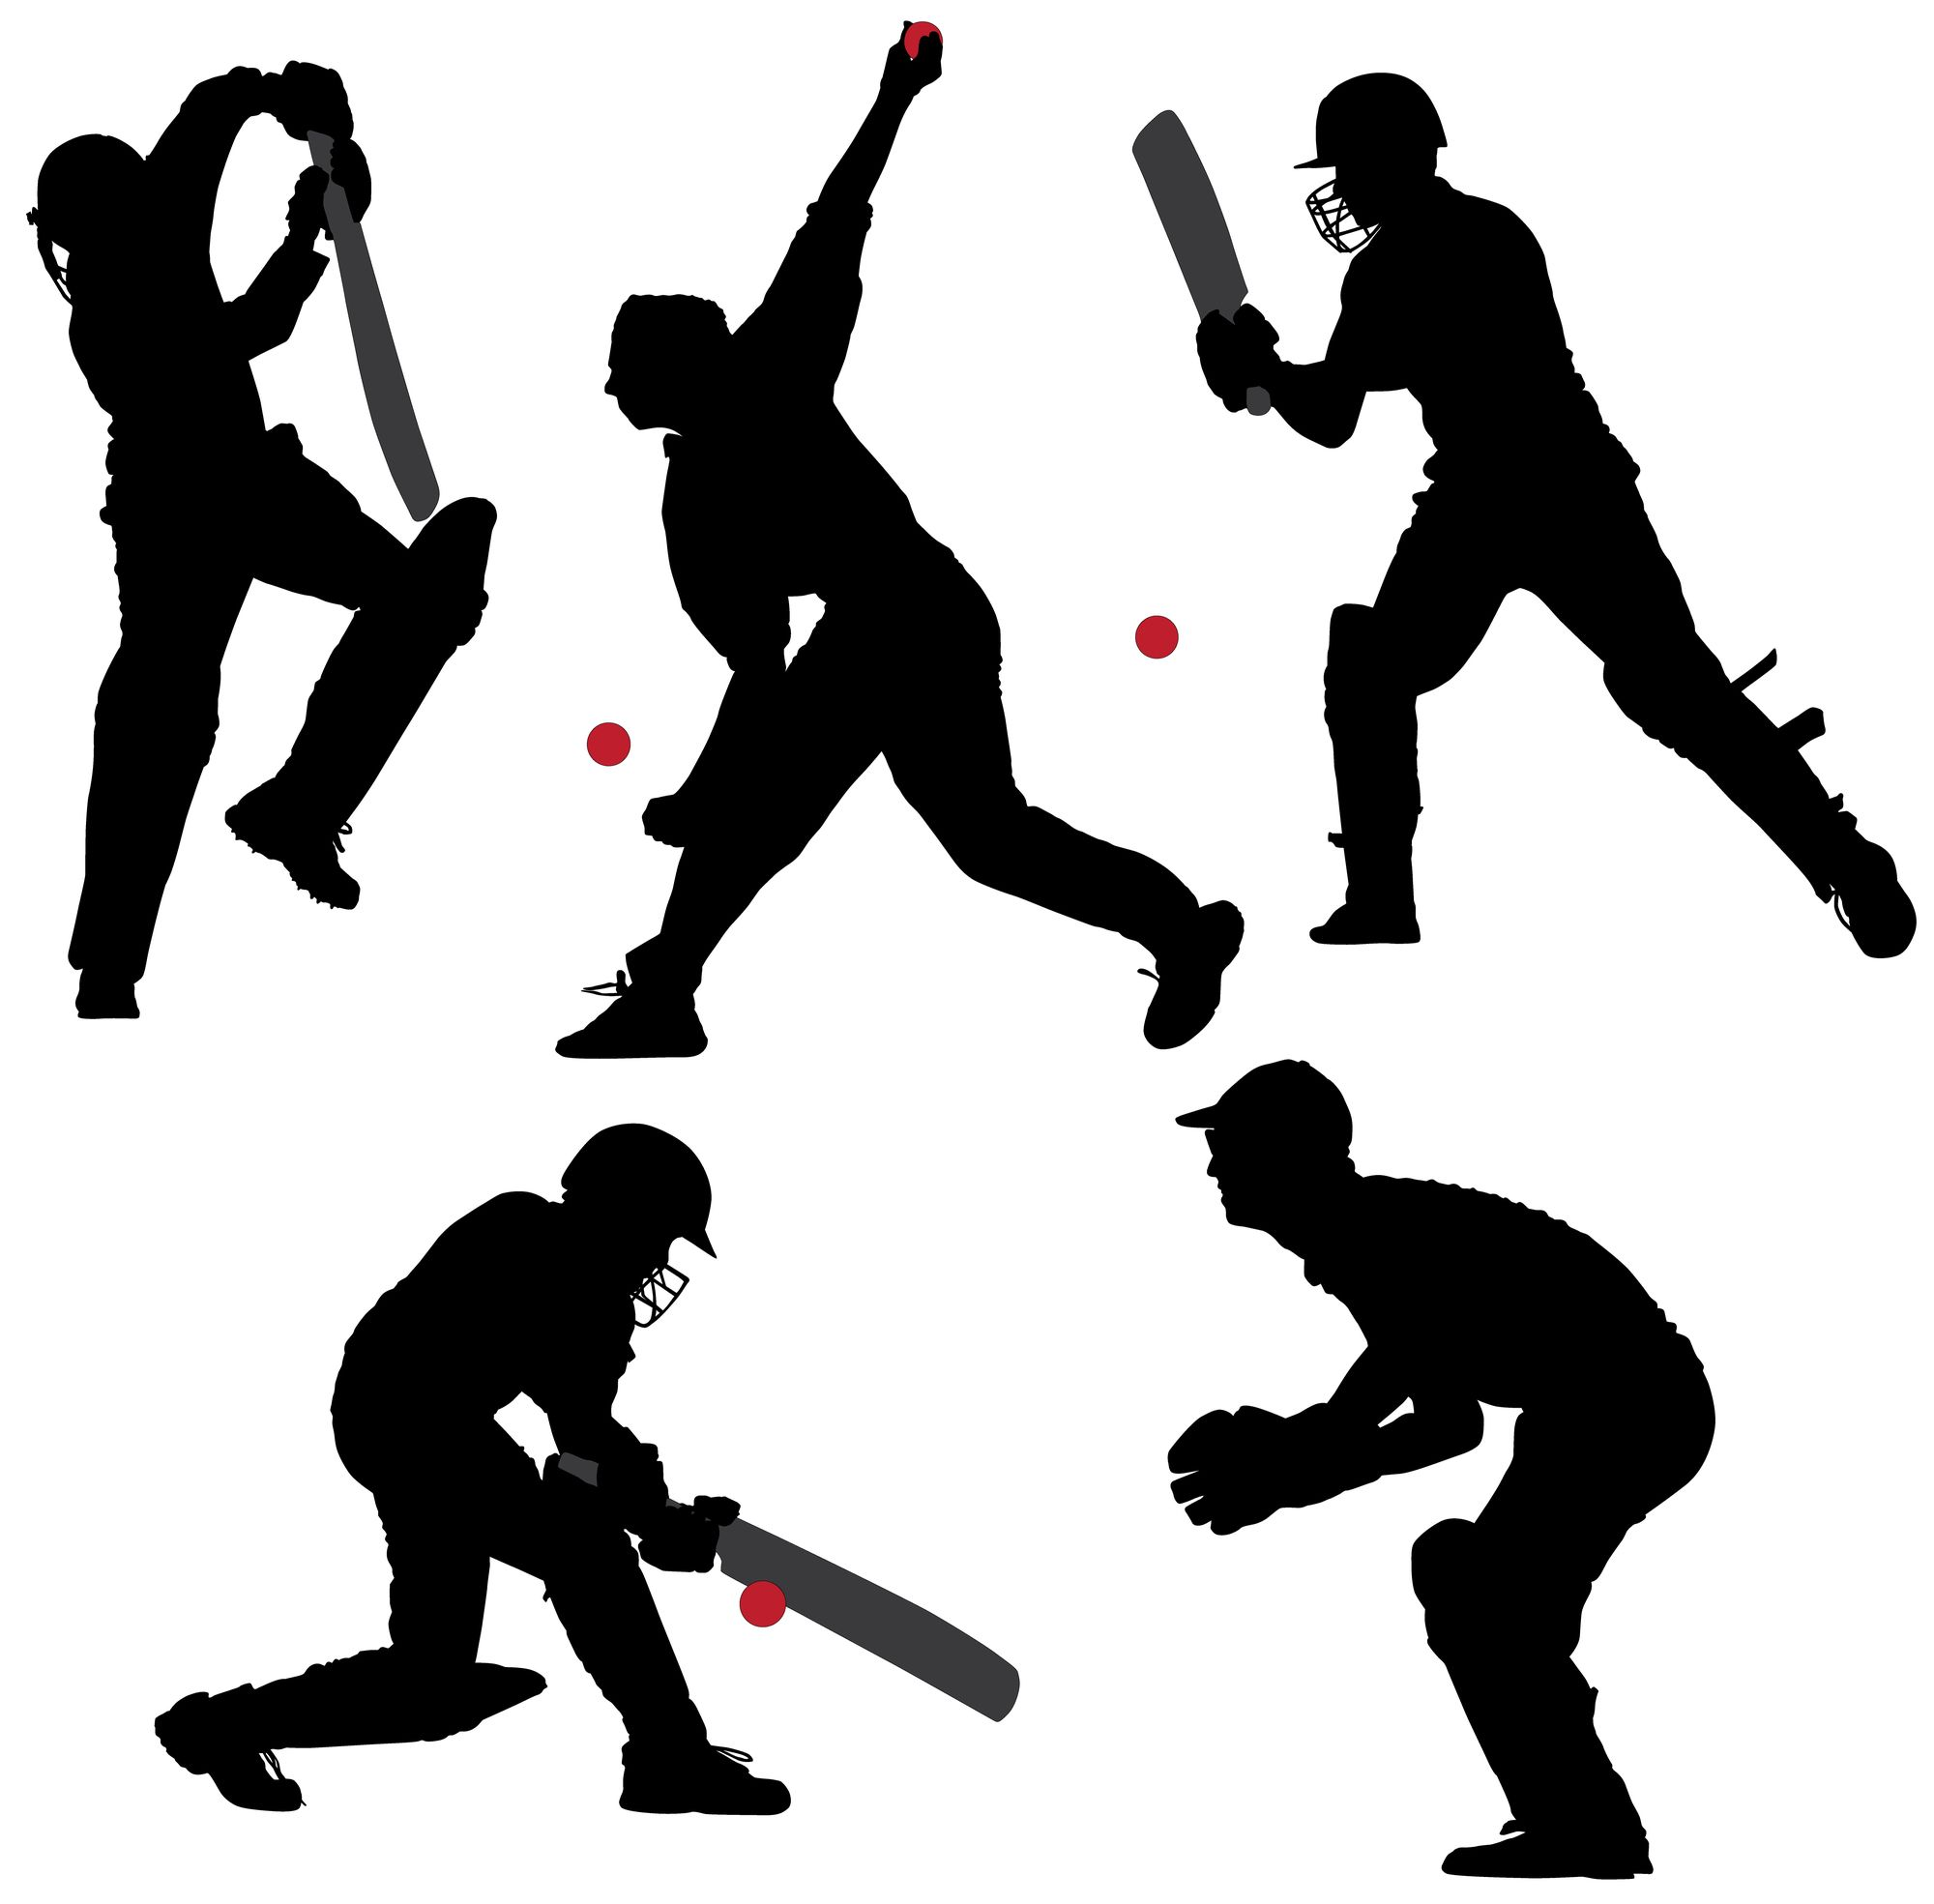 2000x1969 Cricket Sport Silhouette On White Background. Llustration